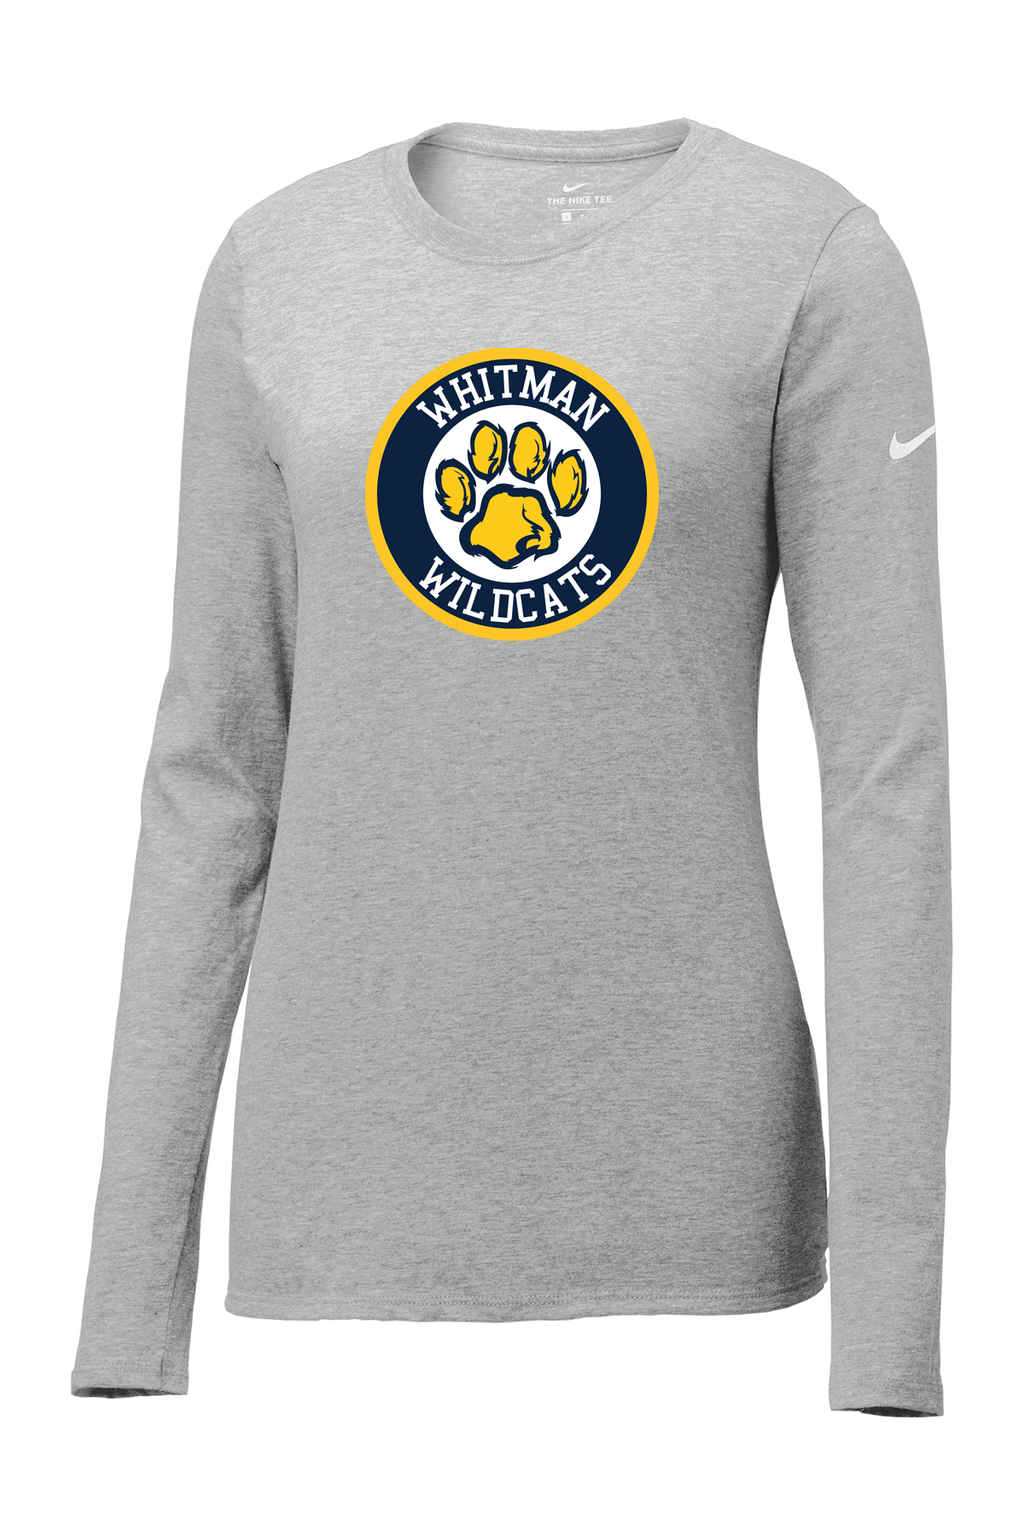 Whitman Wildcats Nike Ladies Core Cotton Long Sleeve Tee